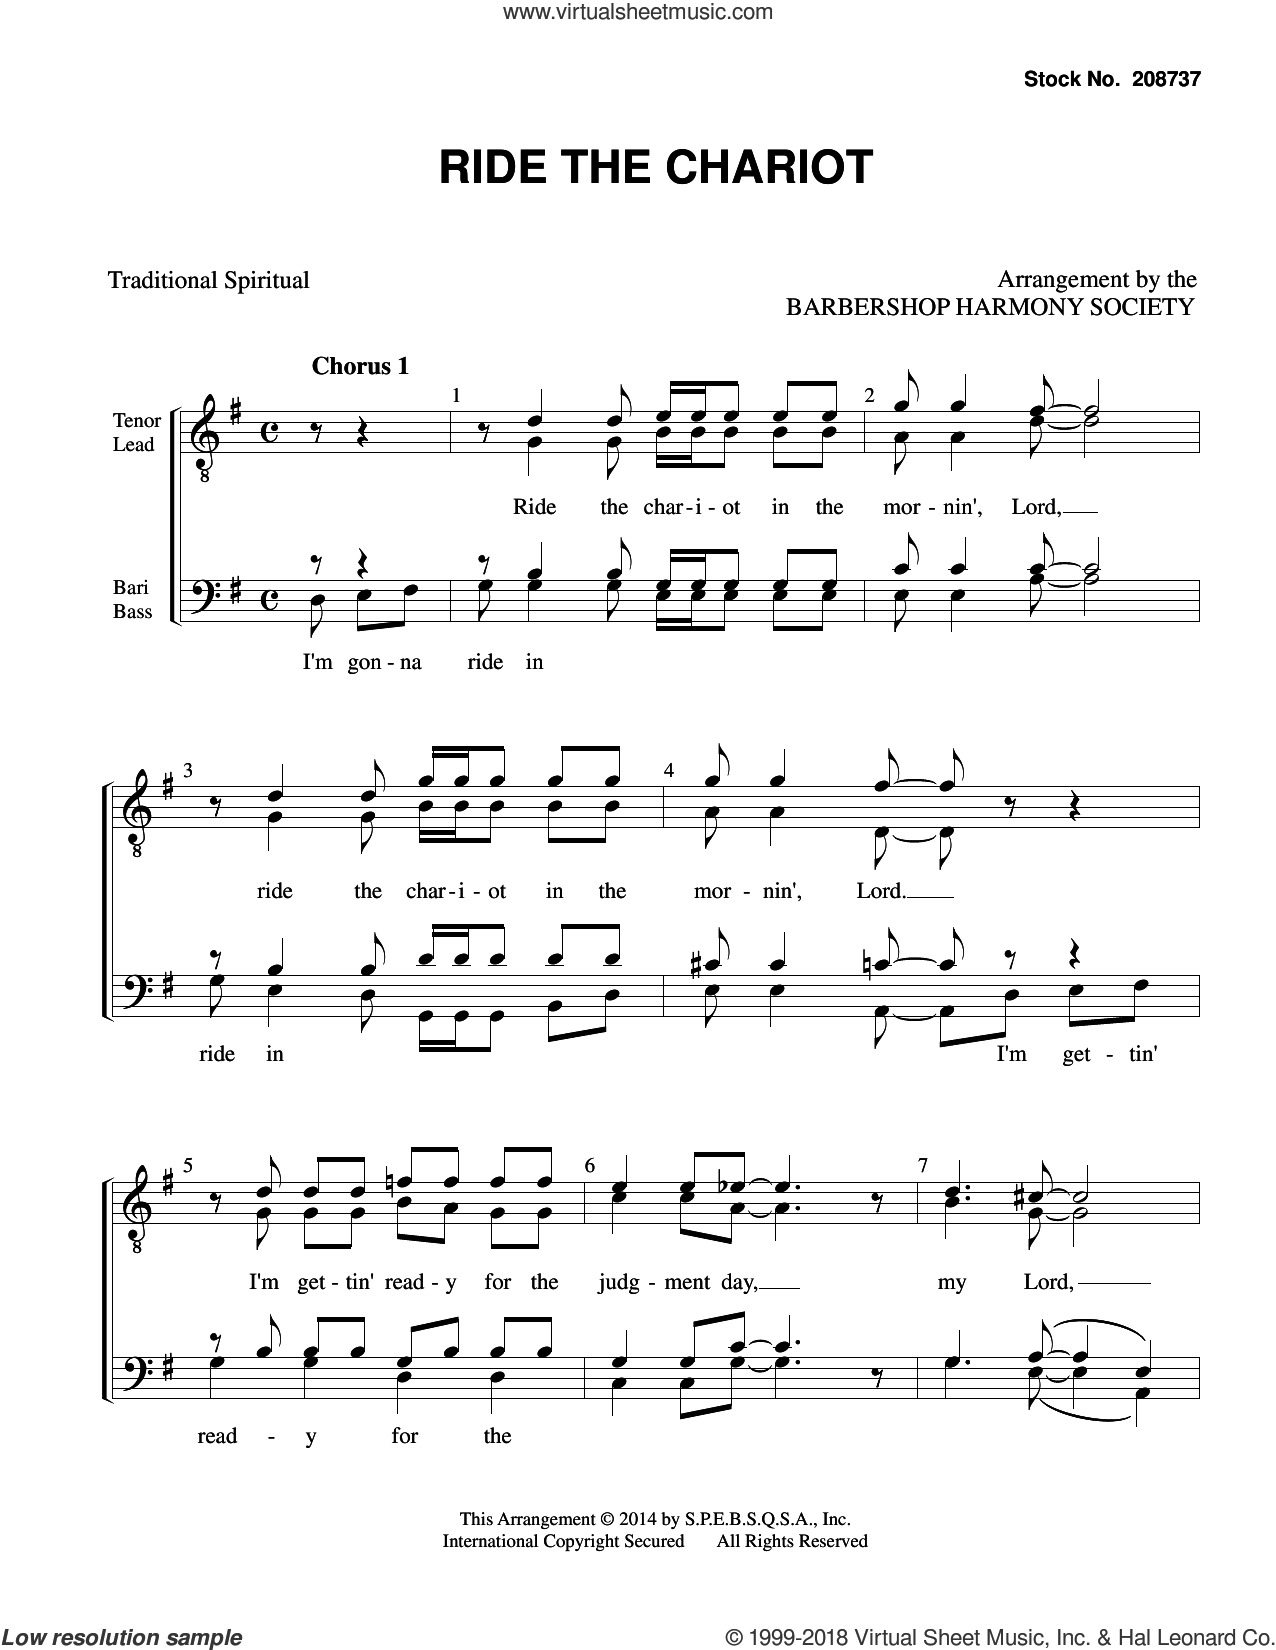 Ride the Chariot (arr. Barbershop Harmony Society) sheet music for choir (TTBB: tenor, bass)  and Barbershop Harmony Society, intermediate skill level